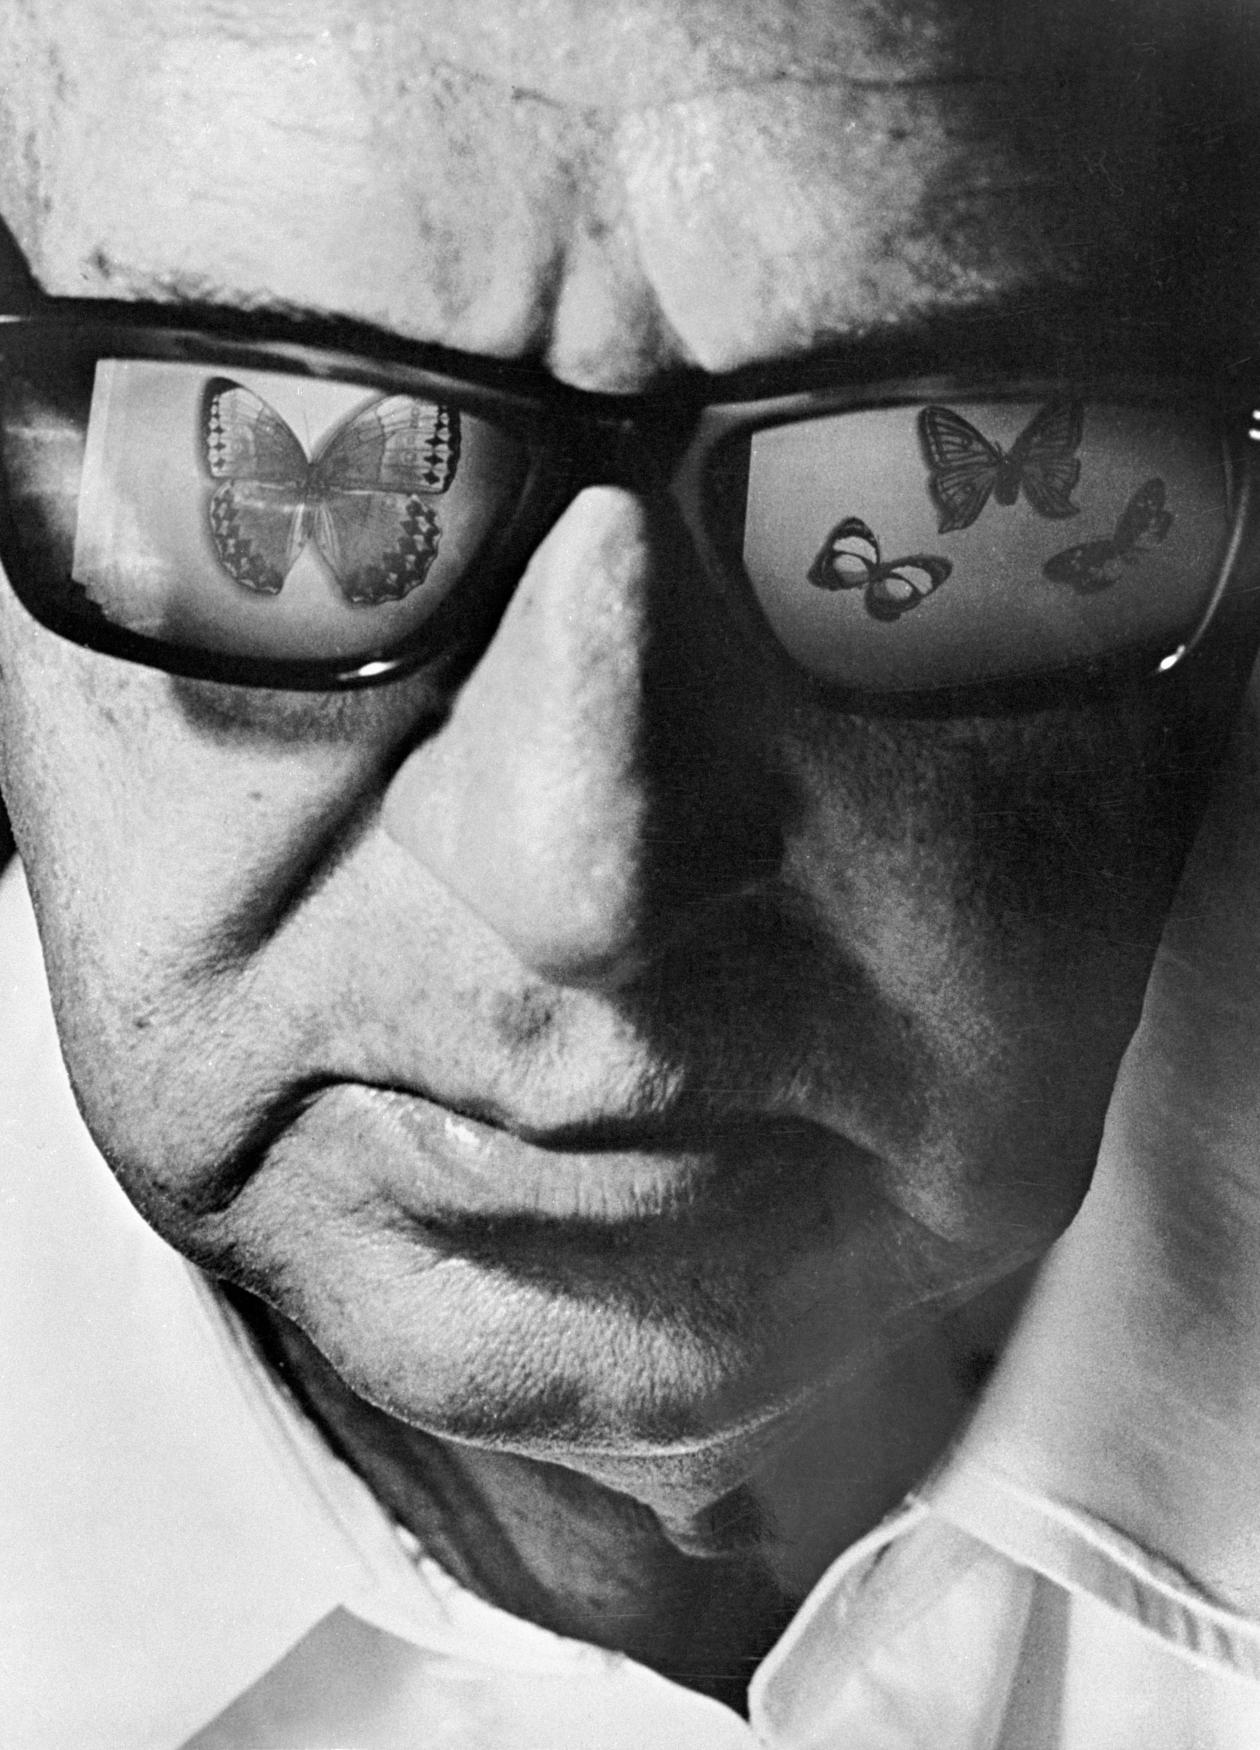 black and white close-up portrait of a man wearing glasses, which reflect butterflies